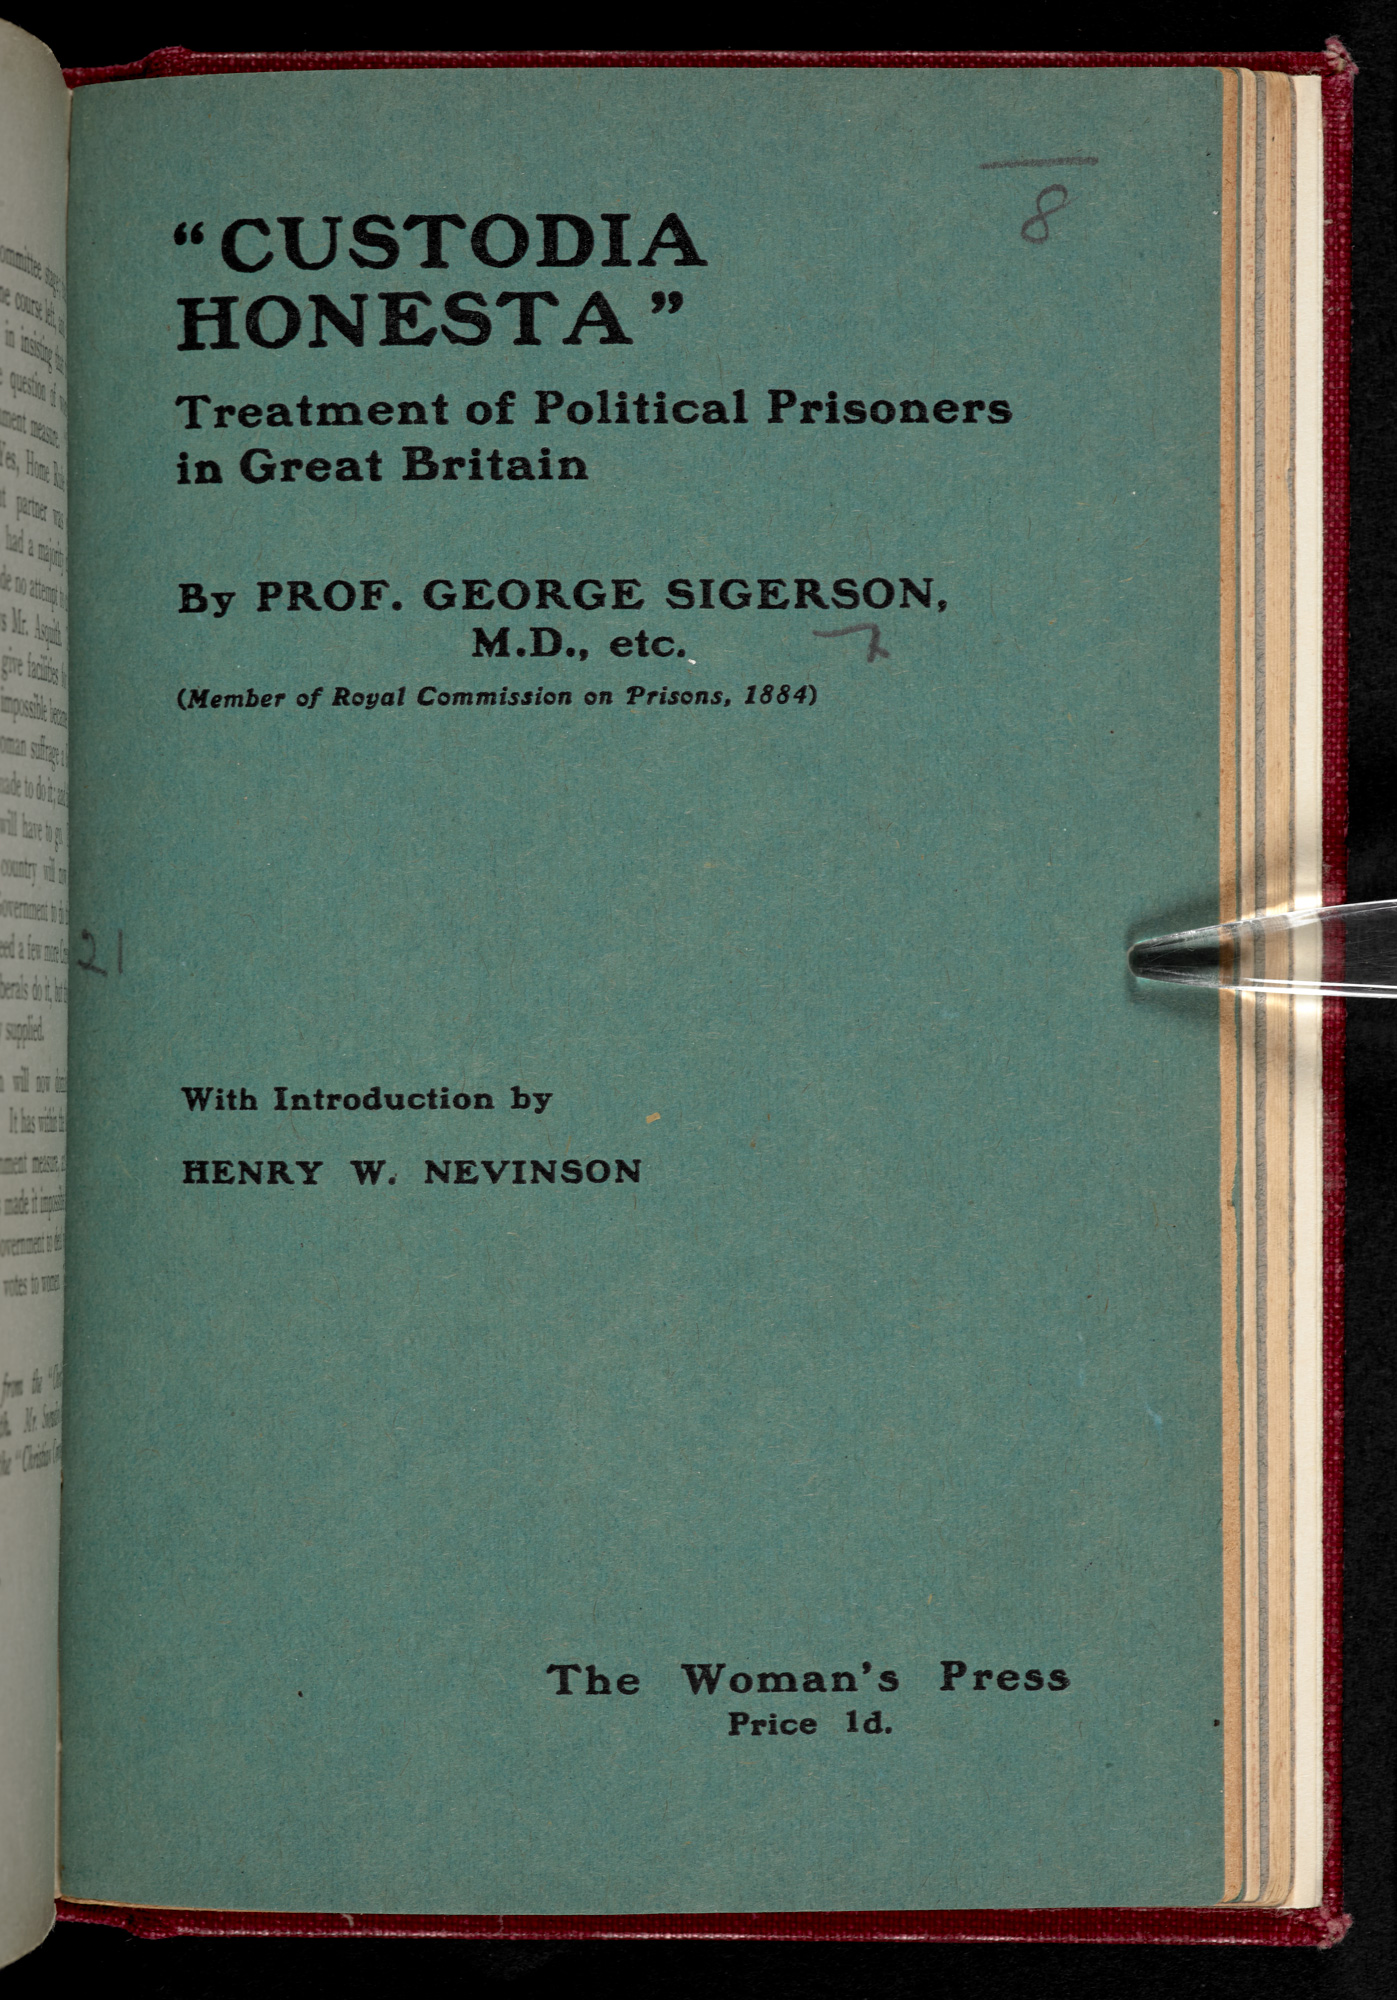 Custodia Honesta pamphlet front cover